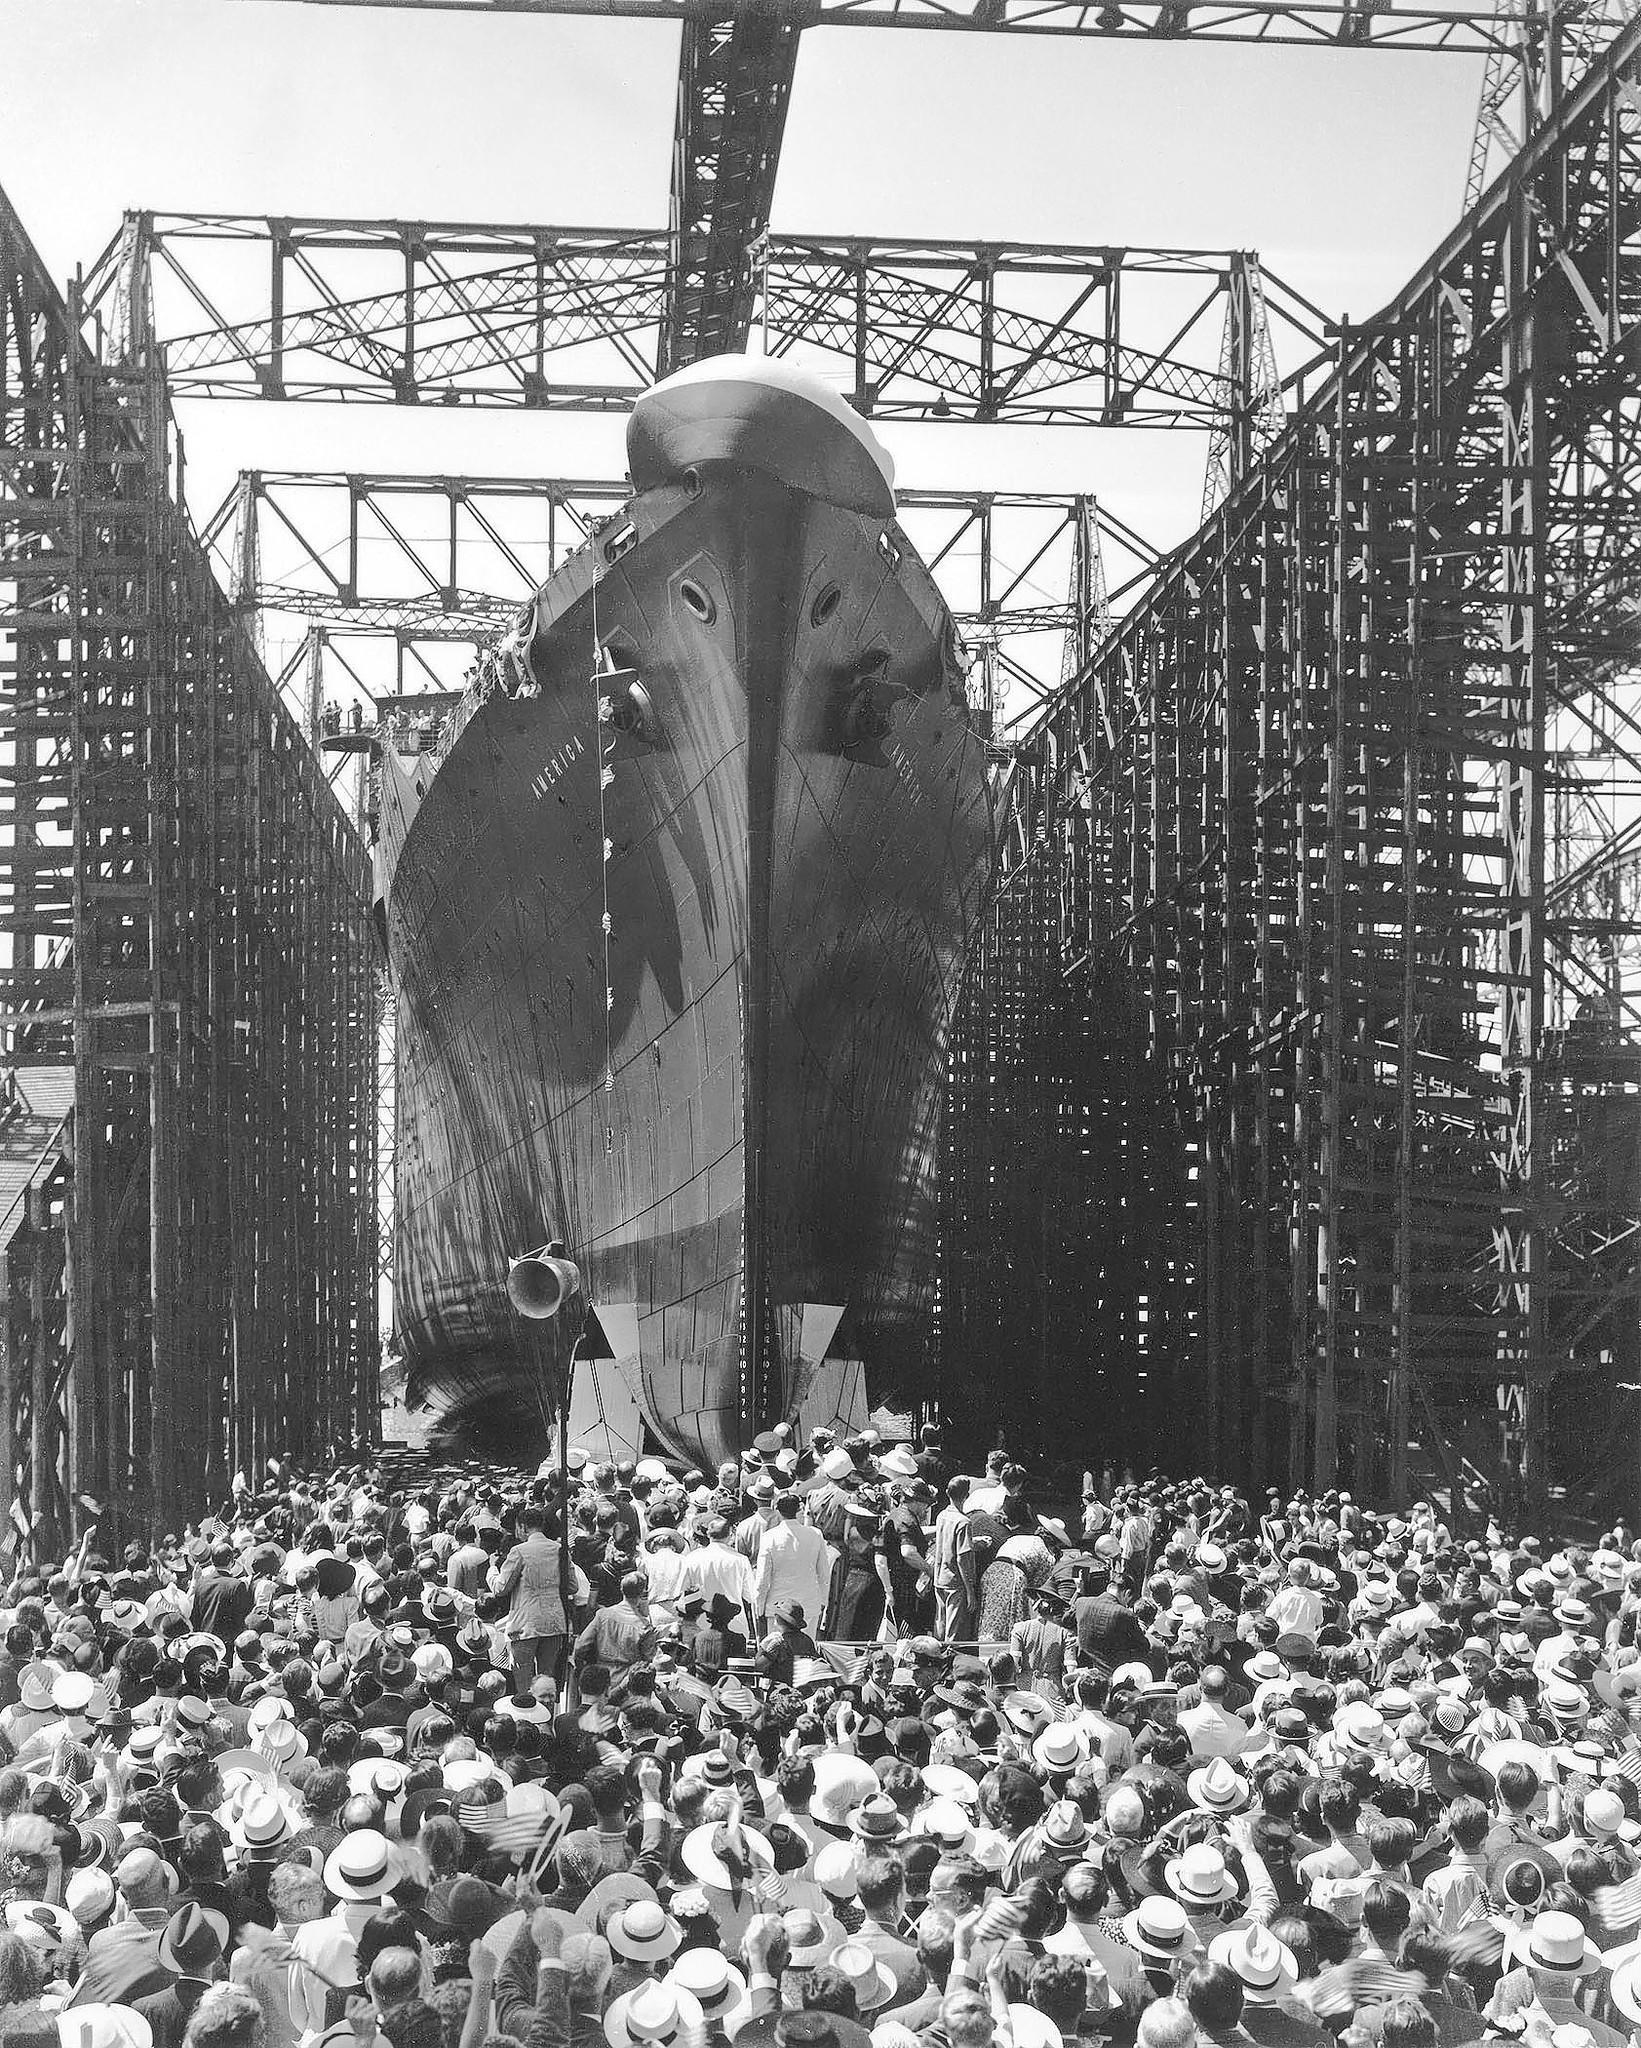 More than 30,000 spectators gathered to watch the launching of the passenger liner SS America at Newport News Shipbuilding on 8/31/1939. The liner was delivered to United States Lines on 7/2/1940.